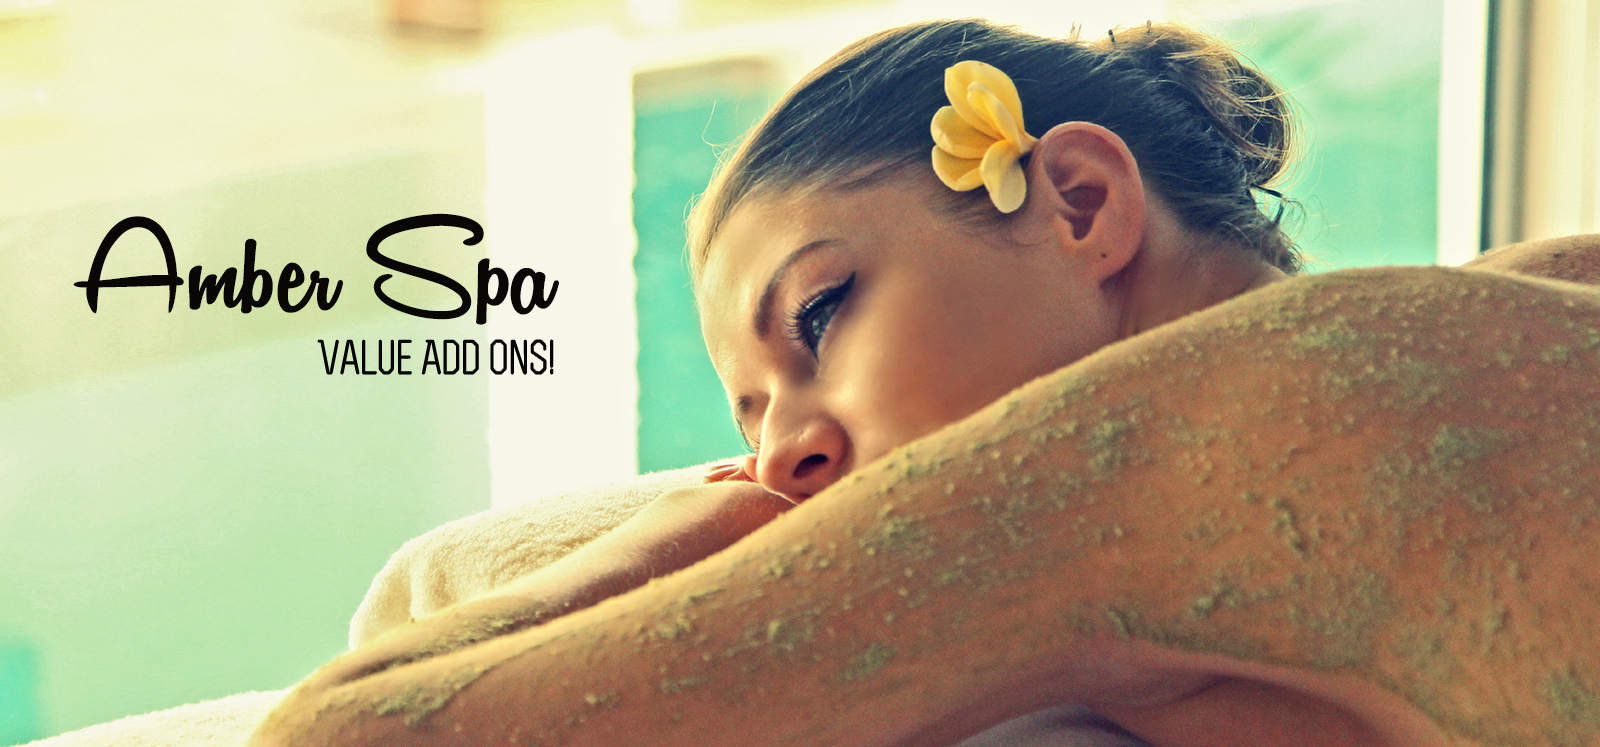 Amber Spa Value Add Ons